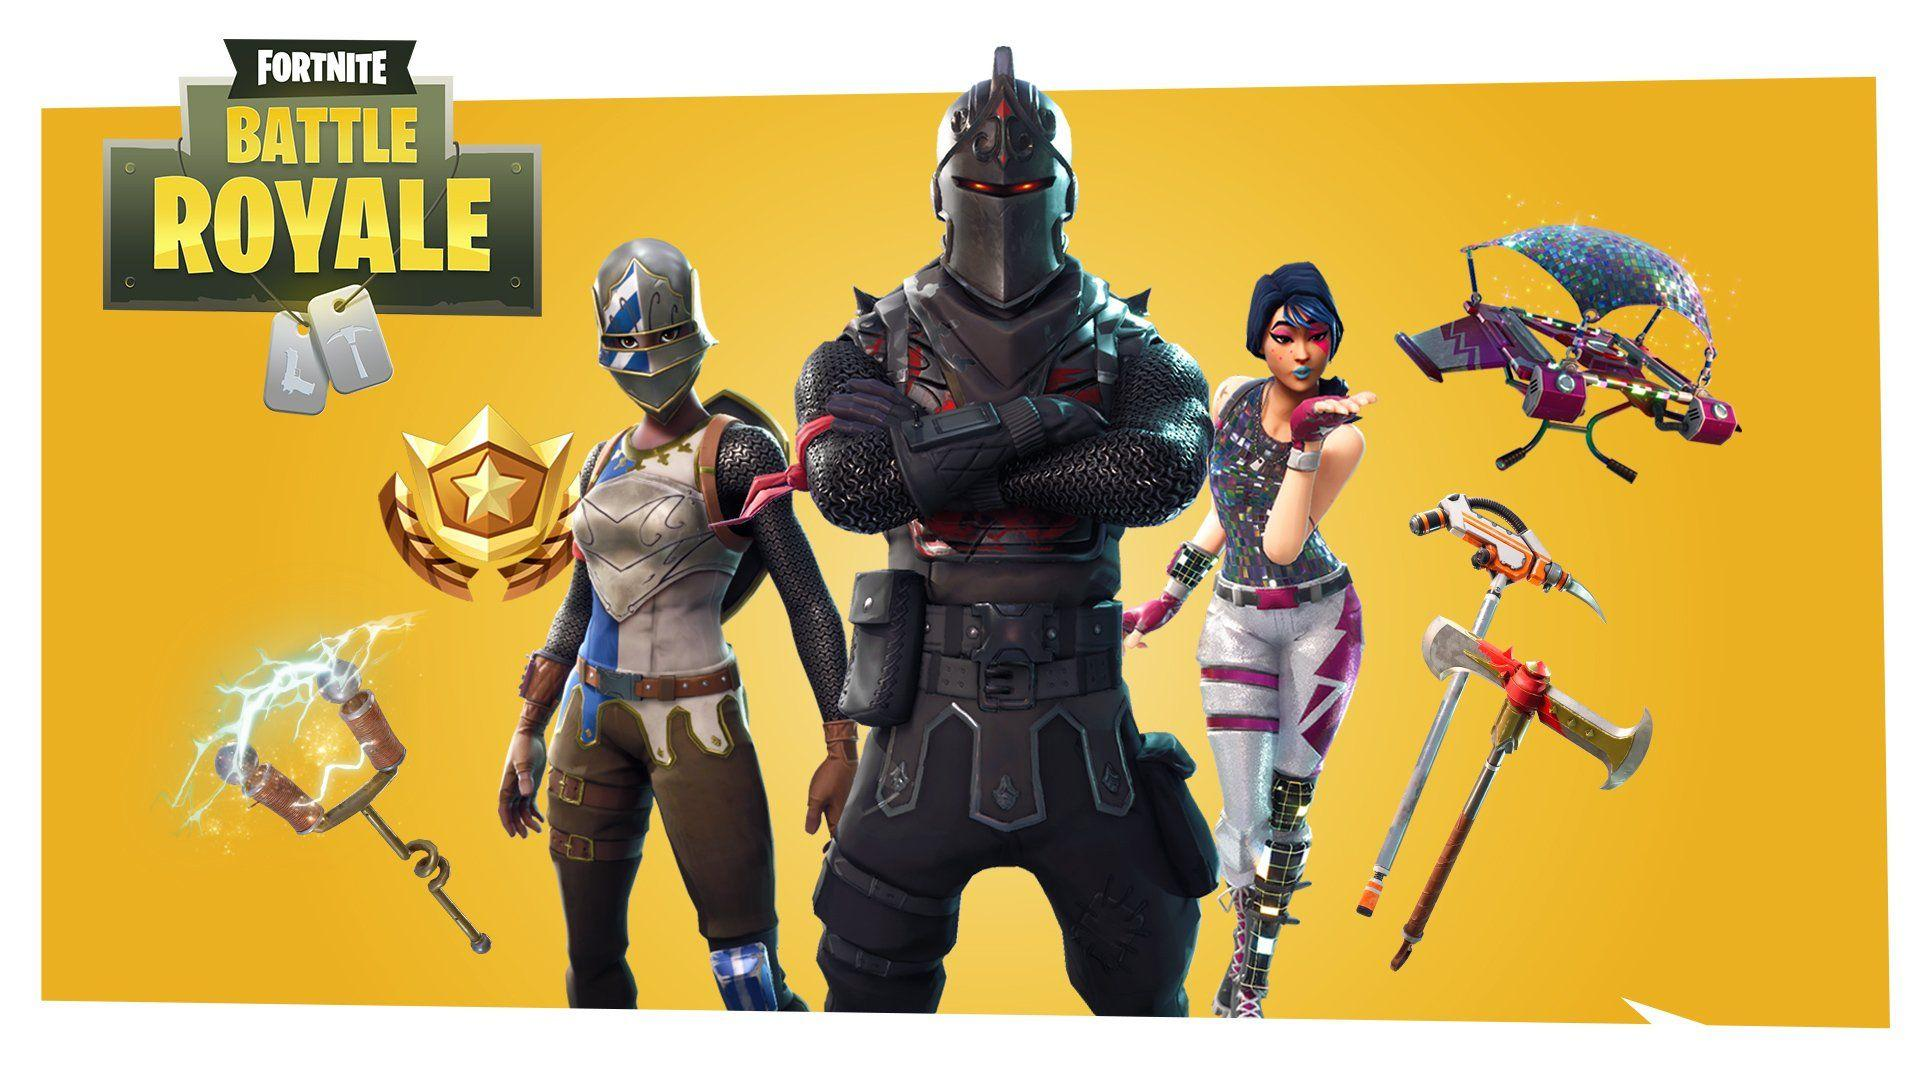 Fortnite Battle Royale - FortniteInsider.com on Twitter: If you ...